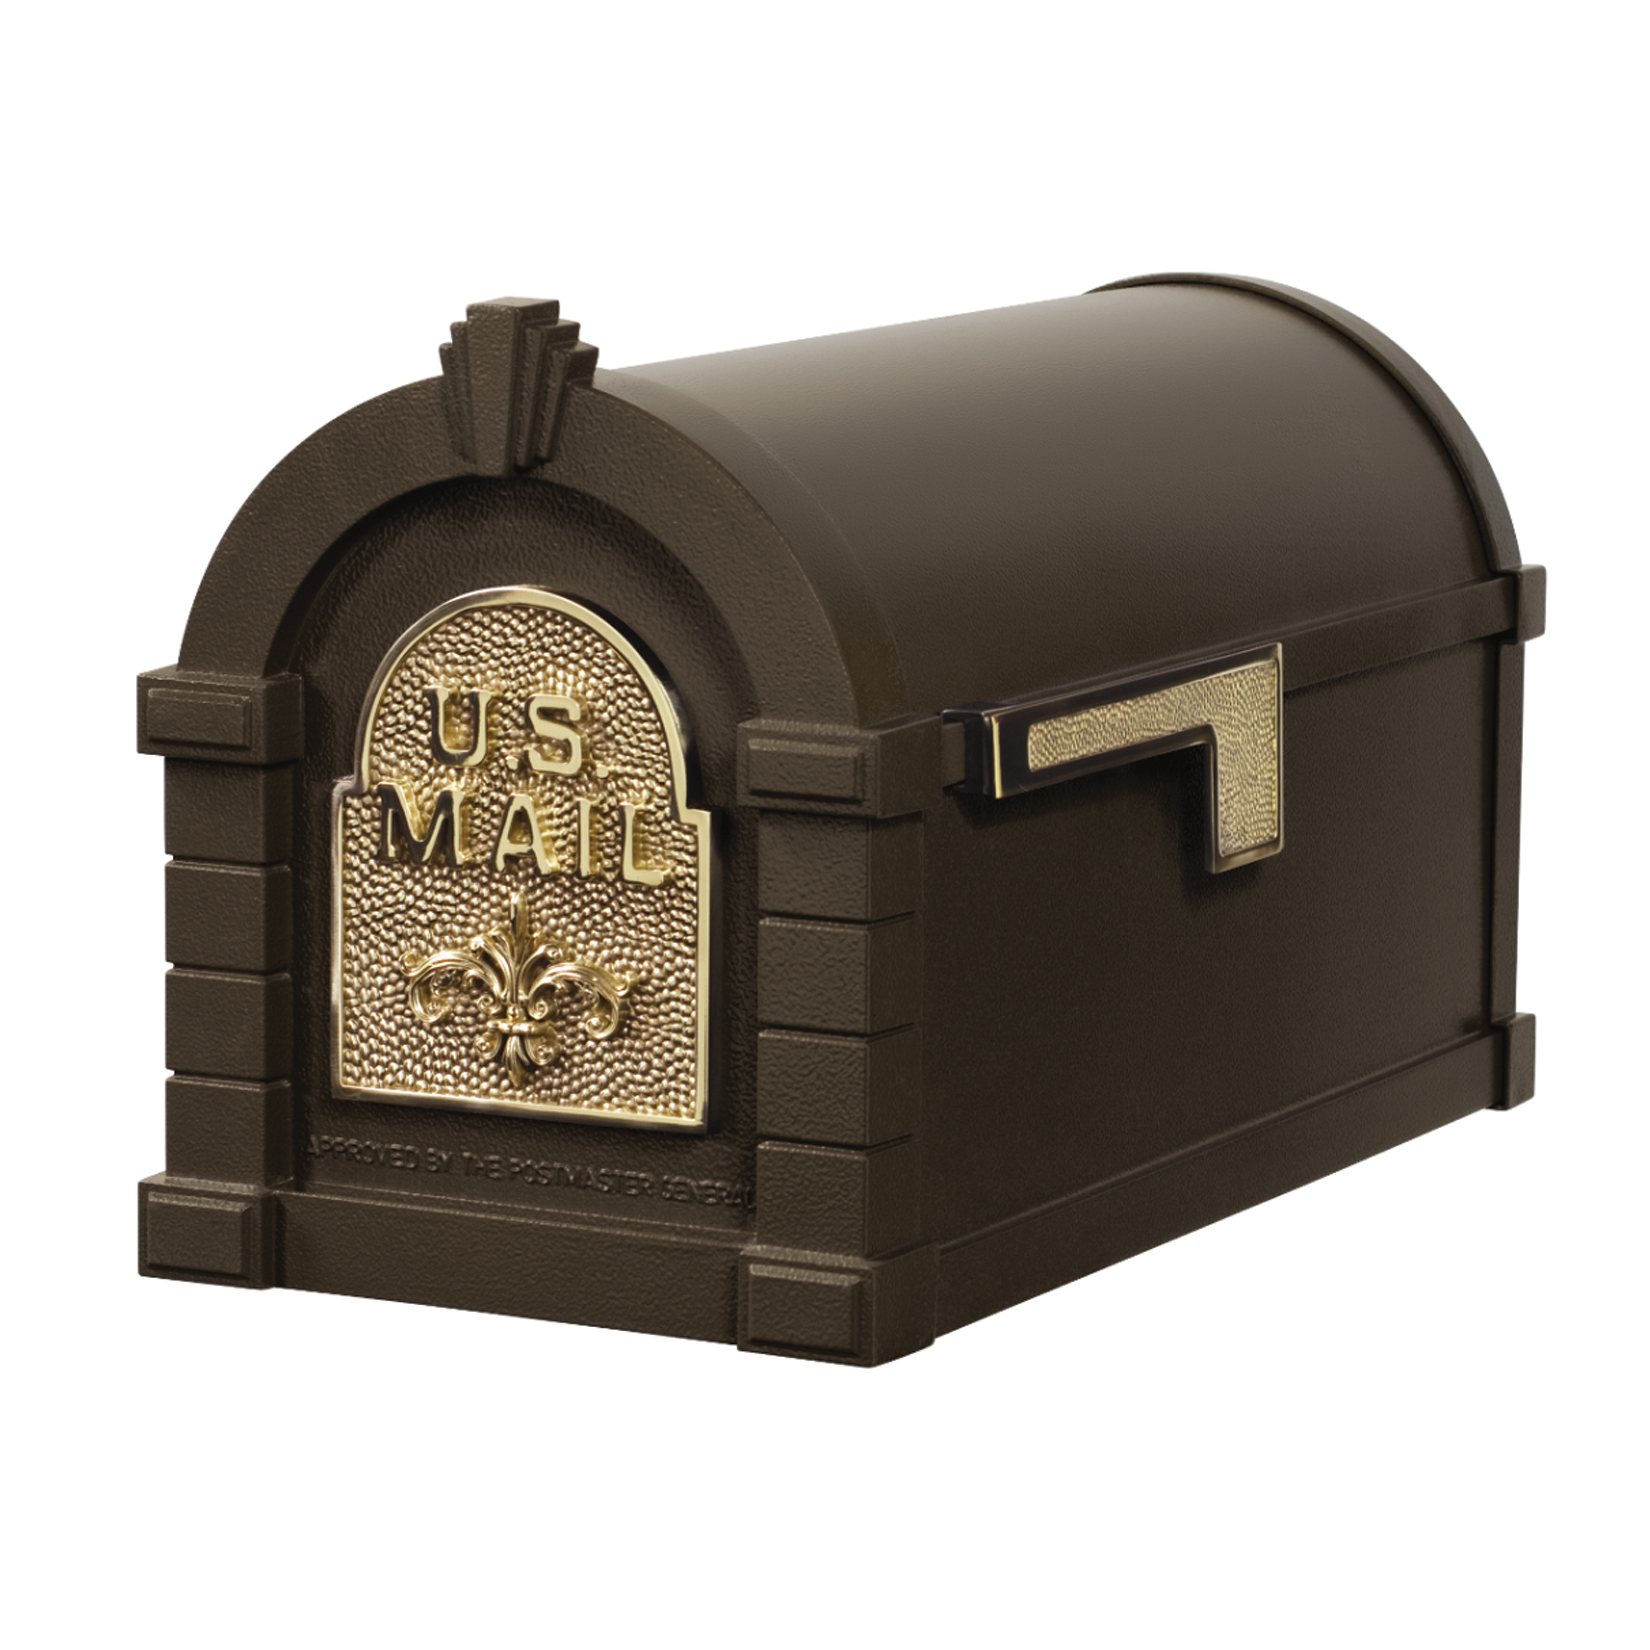 Gaines Fleur De Lis Keystone Mailboxes - Bronze with Polished Brass